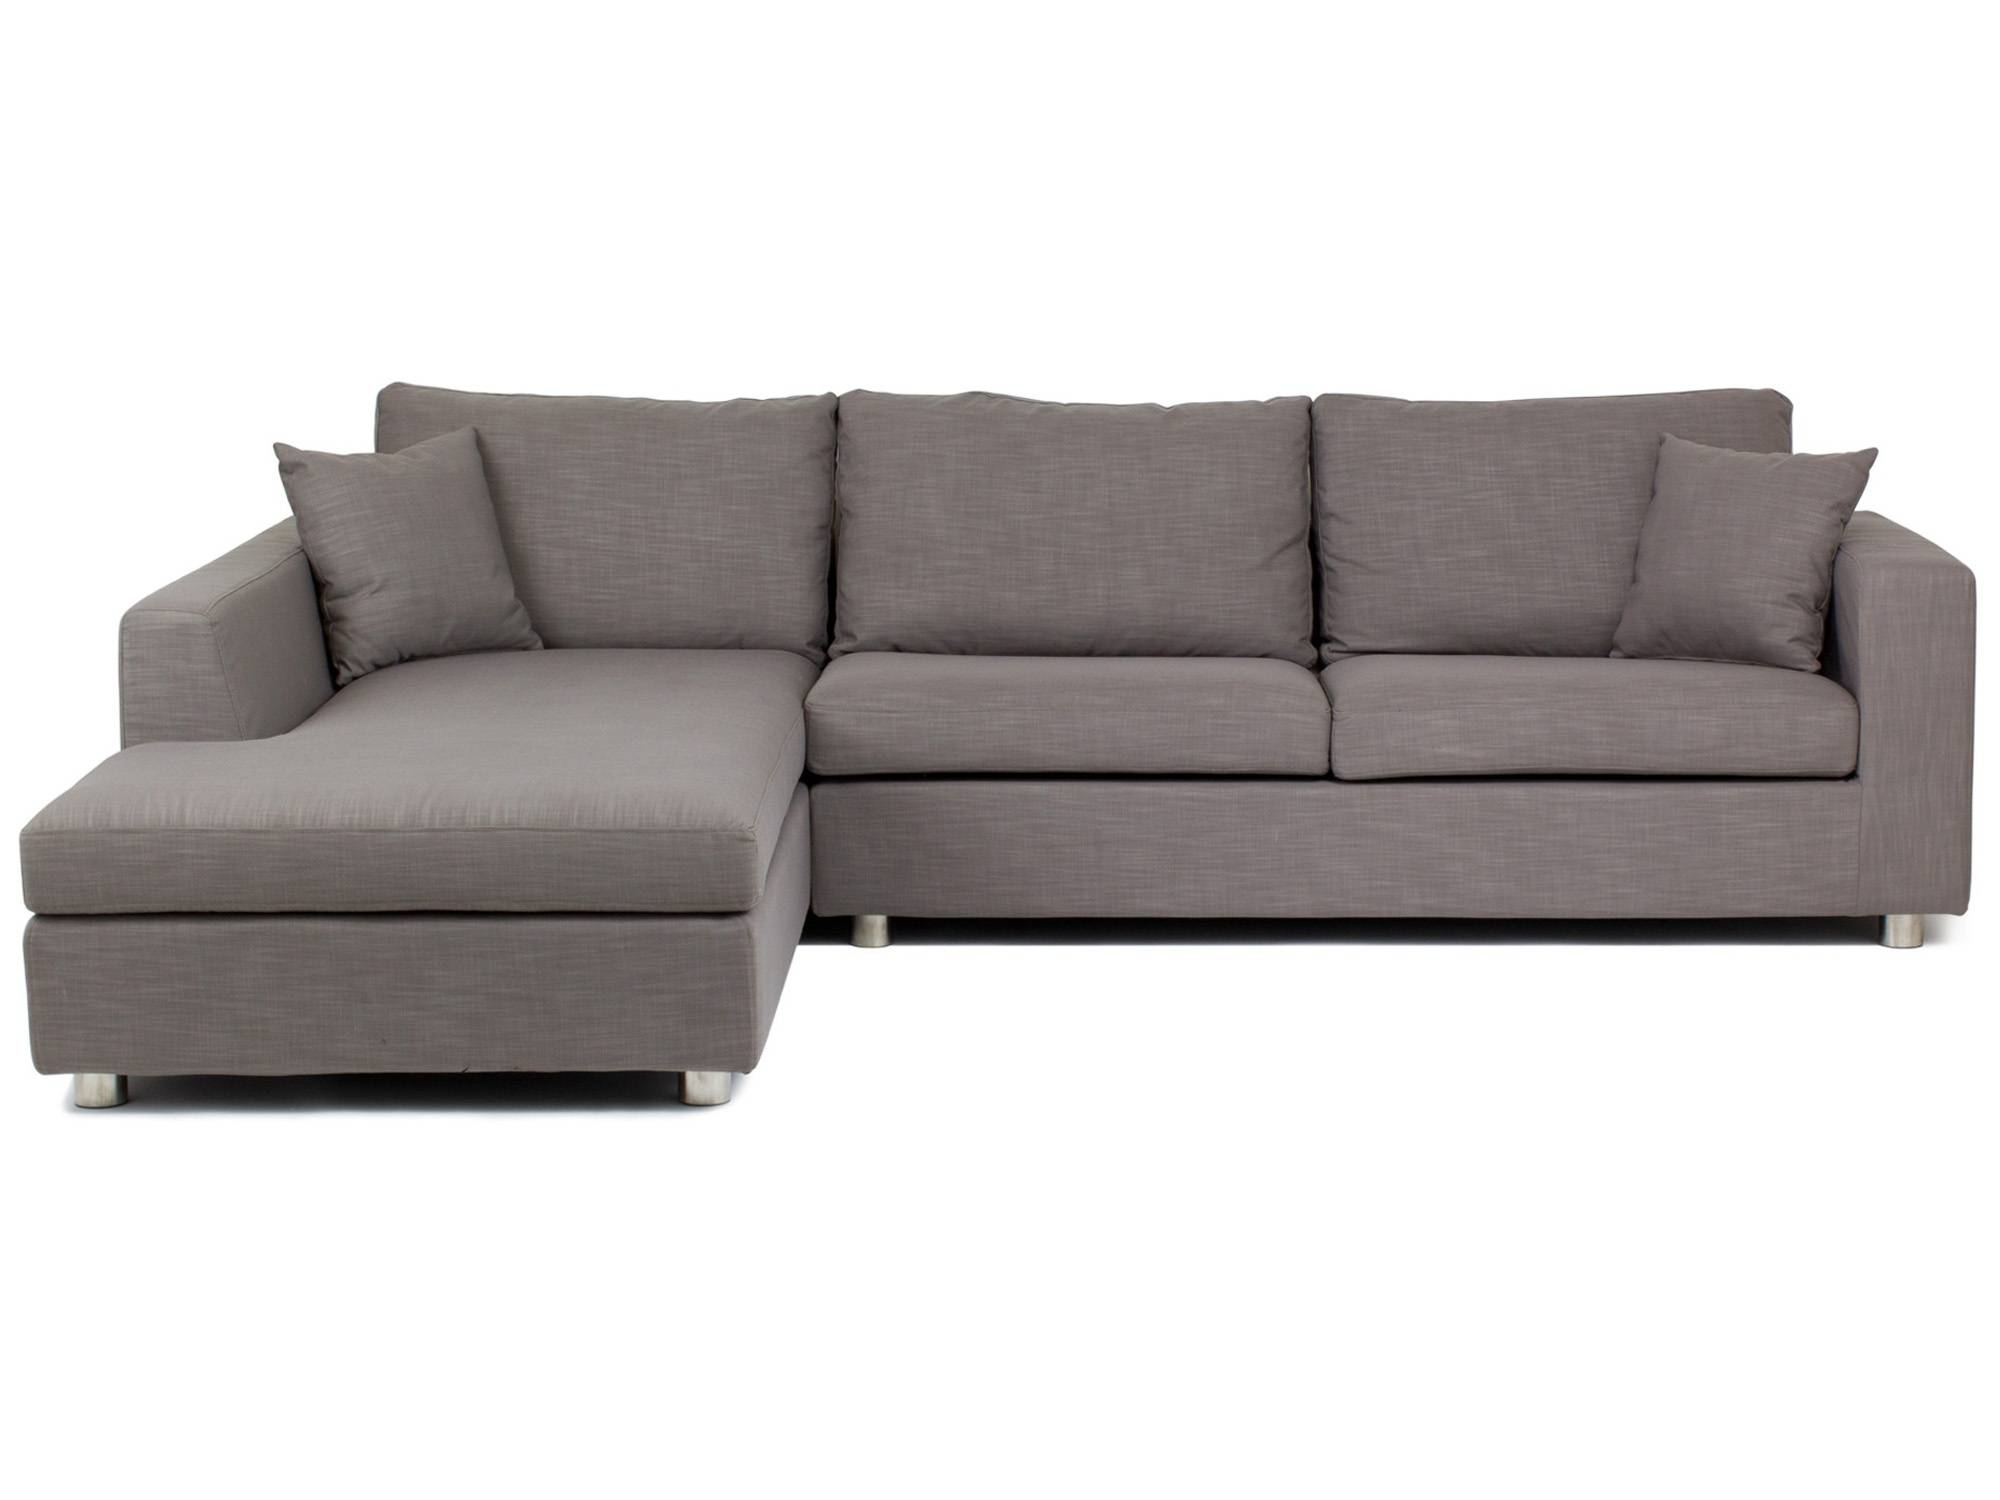 Furniture Home : Jaqueline (Leiden) In Charcoal Grey Bed Chaise throughout Angled Chaise Sofa (Image 7 of 30)